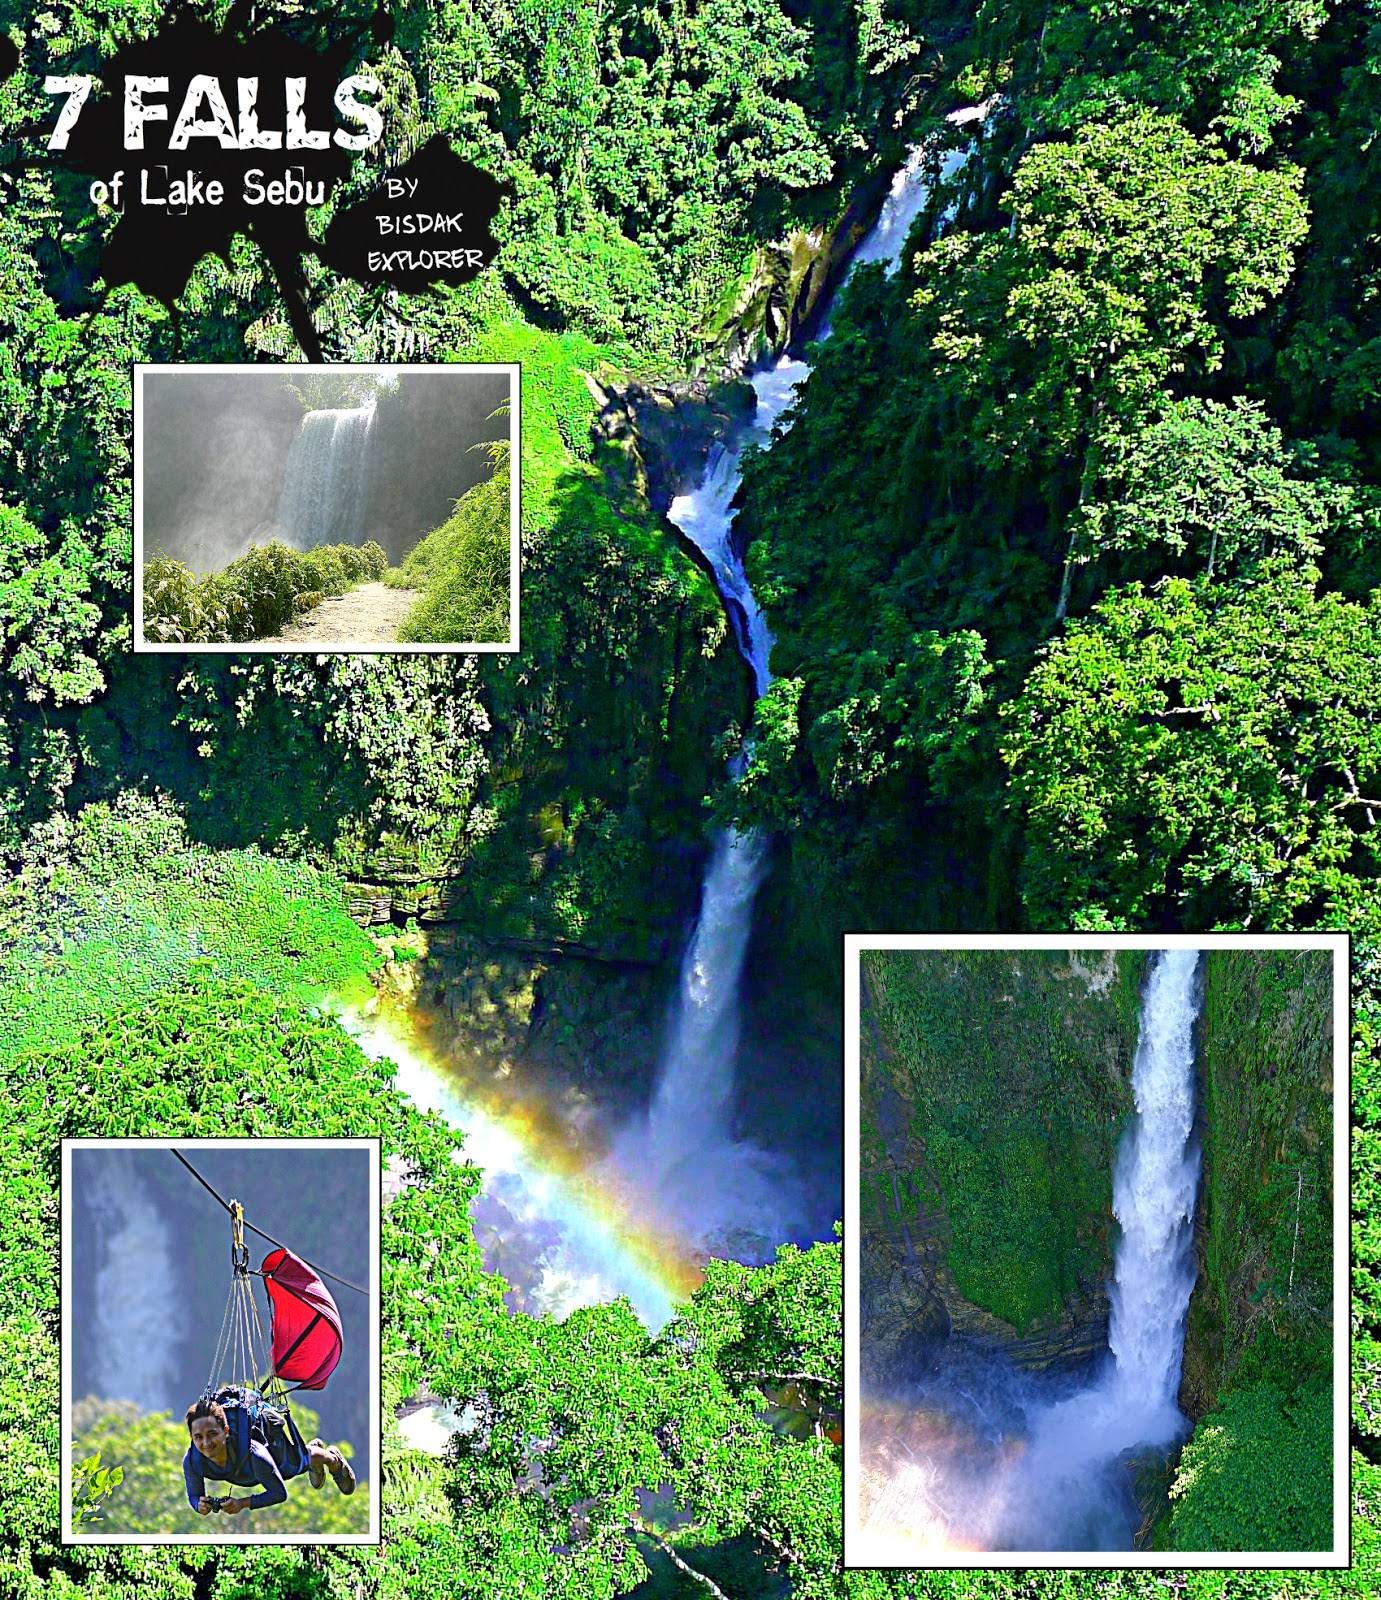 Fabled 7 falls in lake sebu bisdak explorer hidden in the valley and mountains of lake sebu is the most extraordinary wonder of nature that has unique trait of both power and beauty thecheapjerseys Gallery